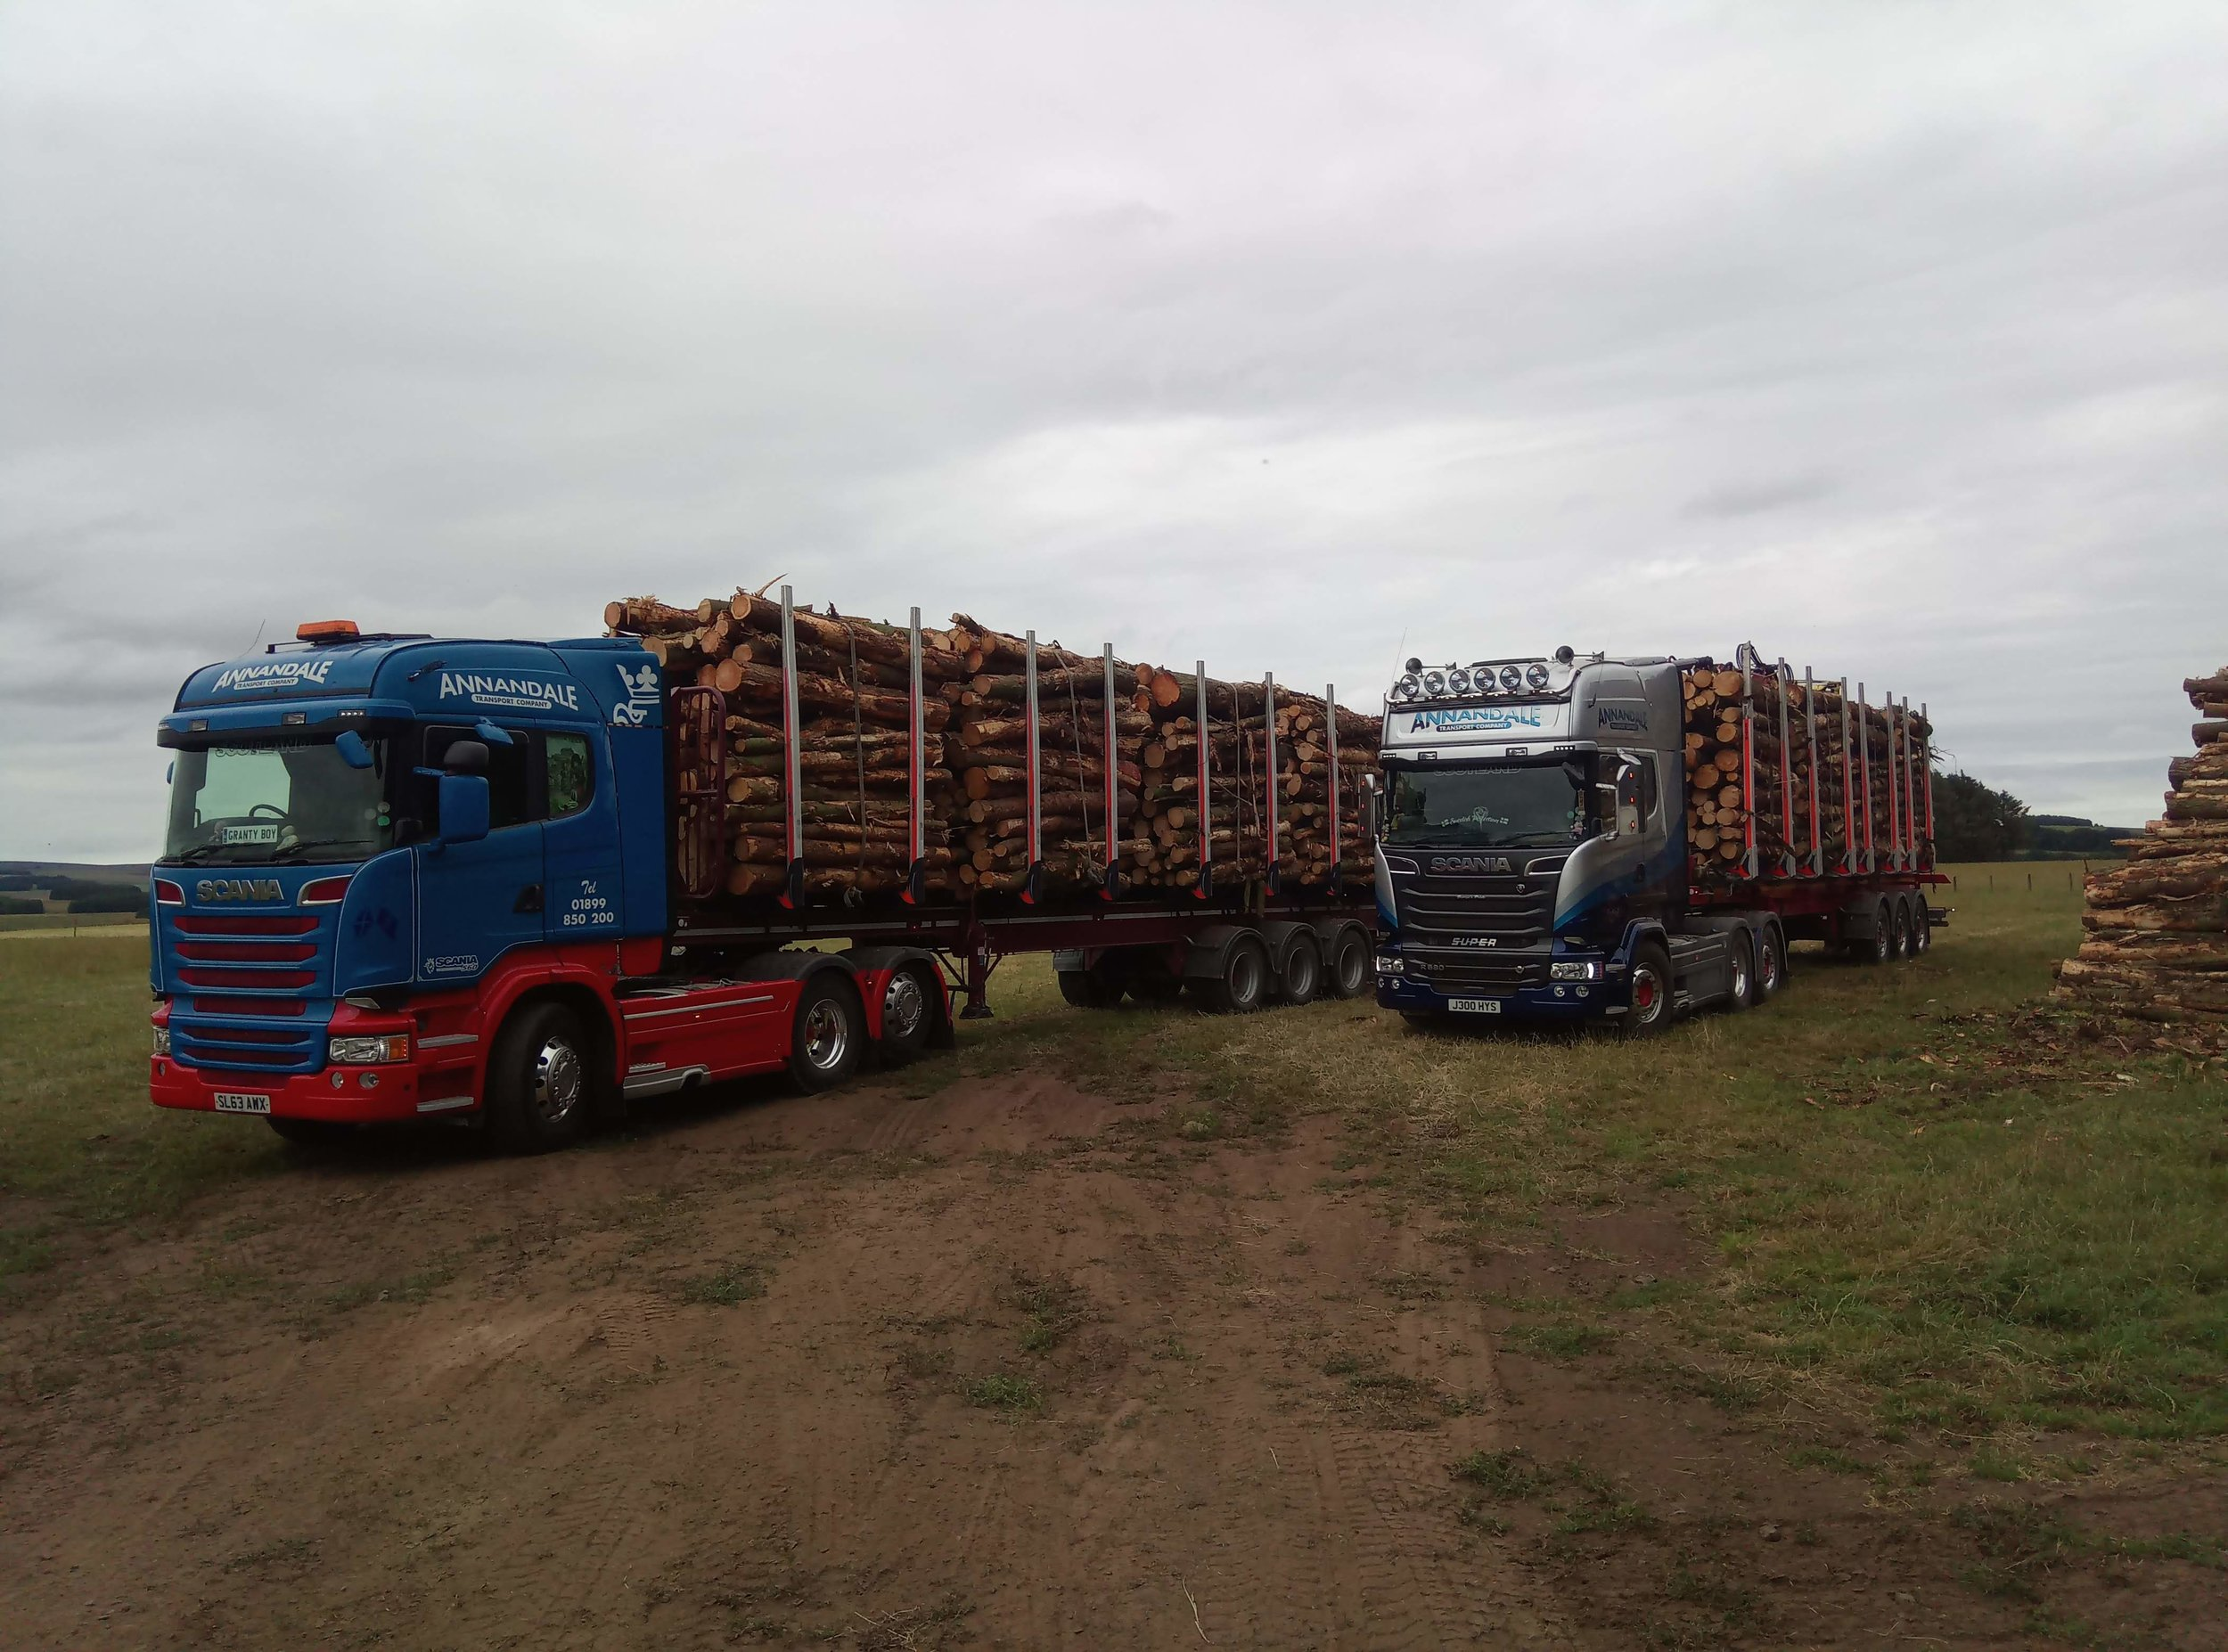 Timber trucks loading on a field-not something you see often during a typical Scottish summer!